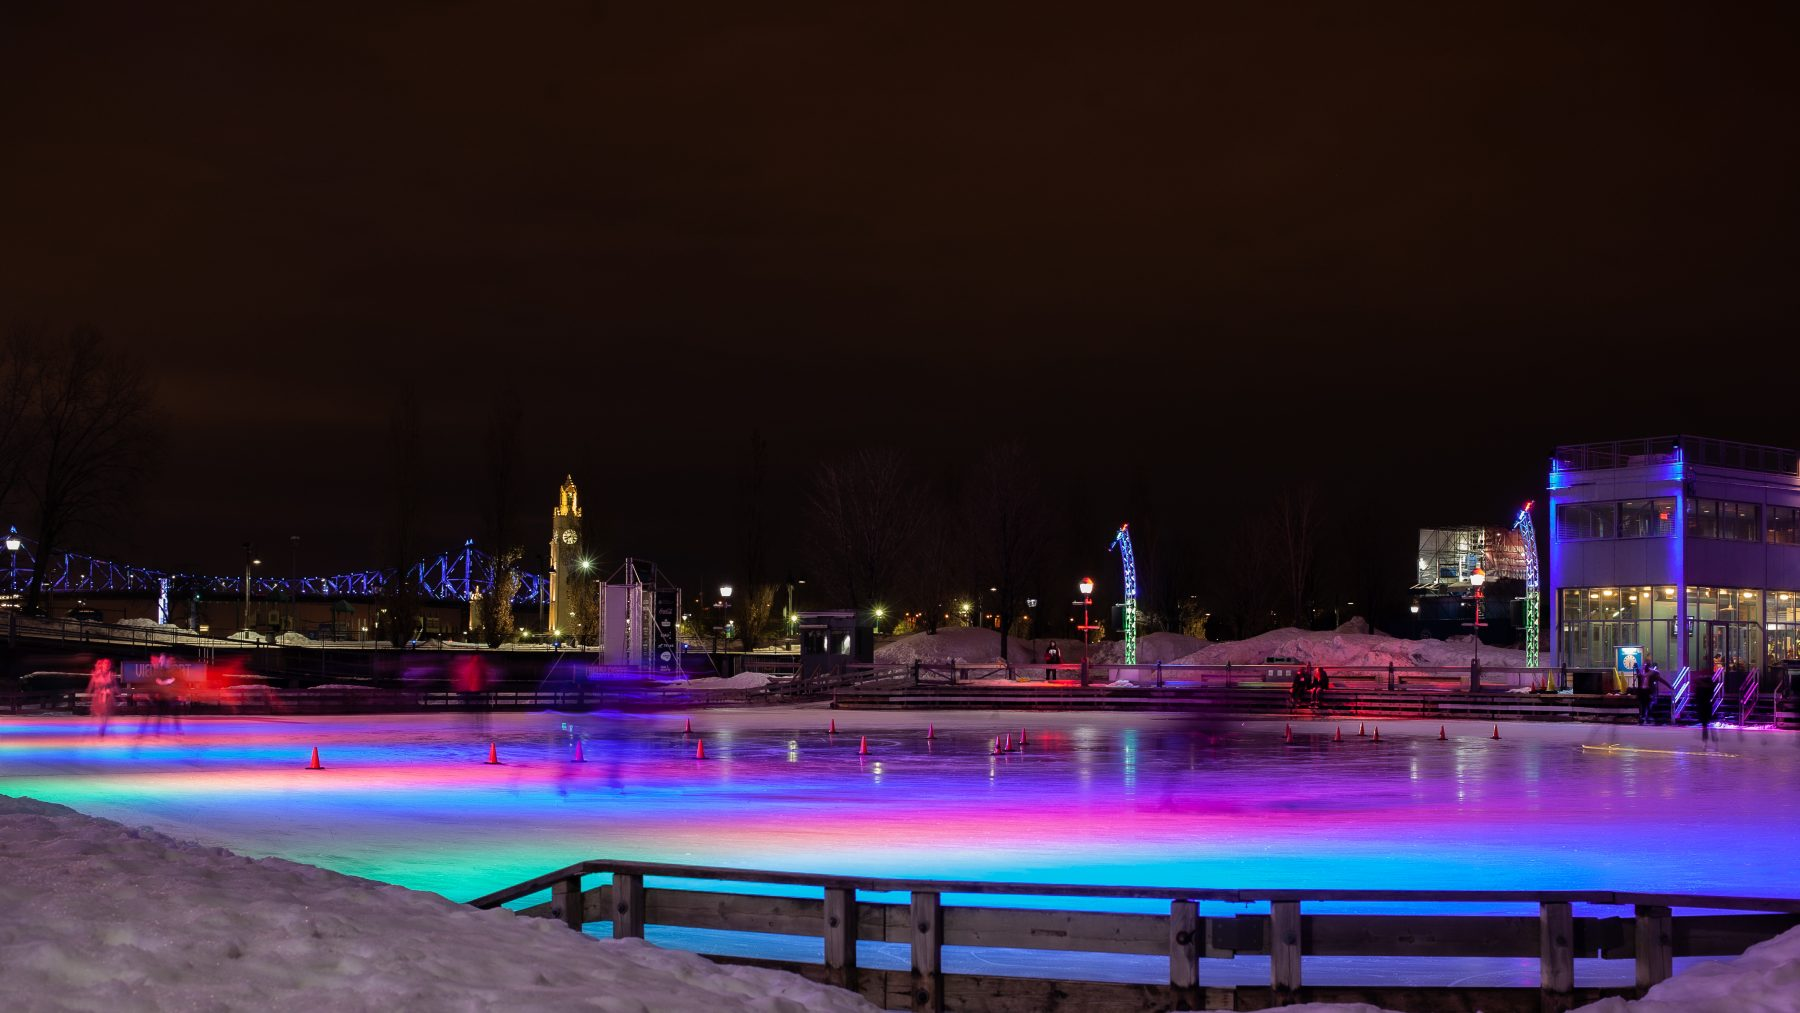 Multi-colored lights shining on an ice rink